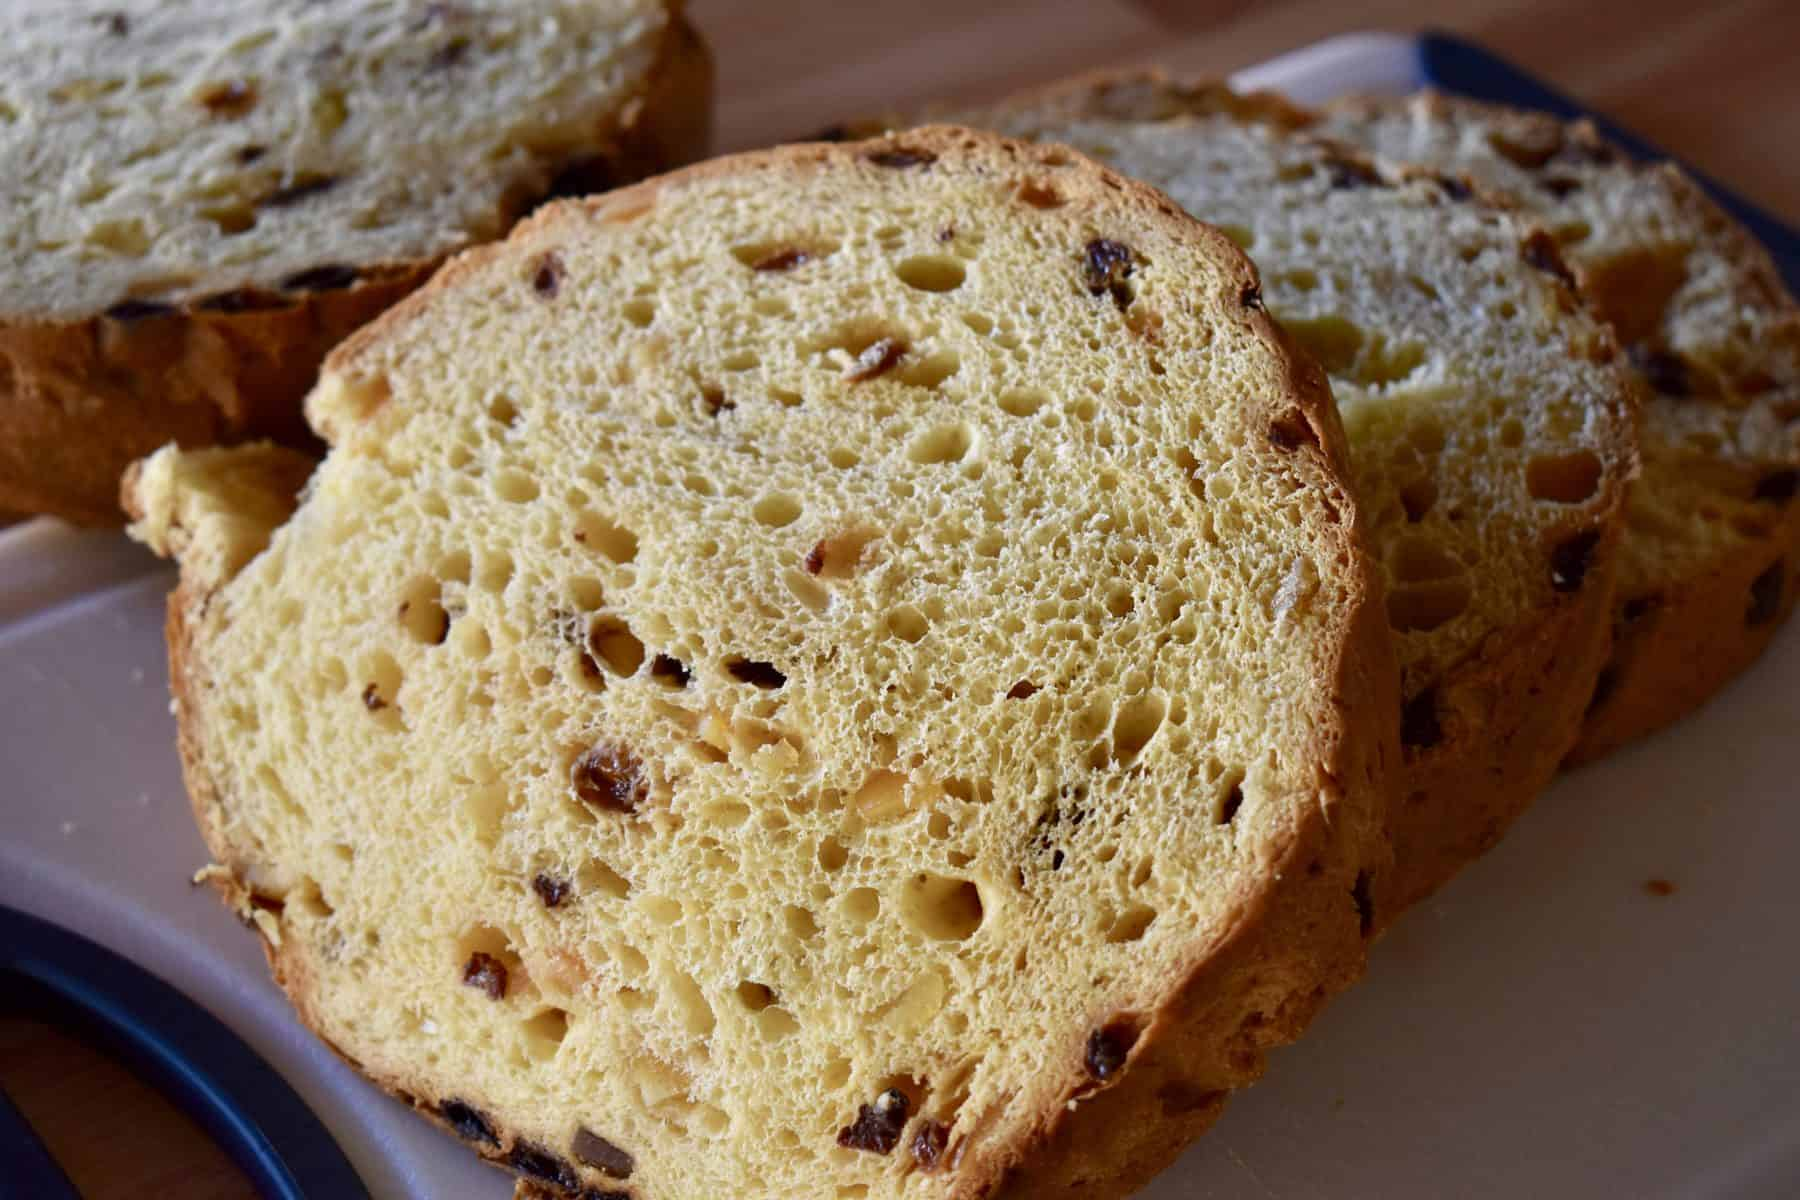 Sliced Panettone on a white cutting board.